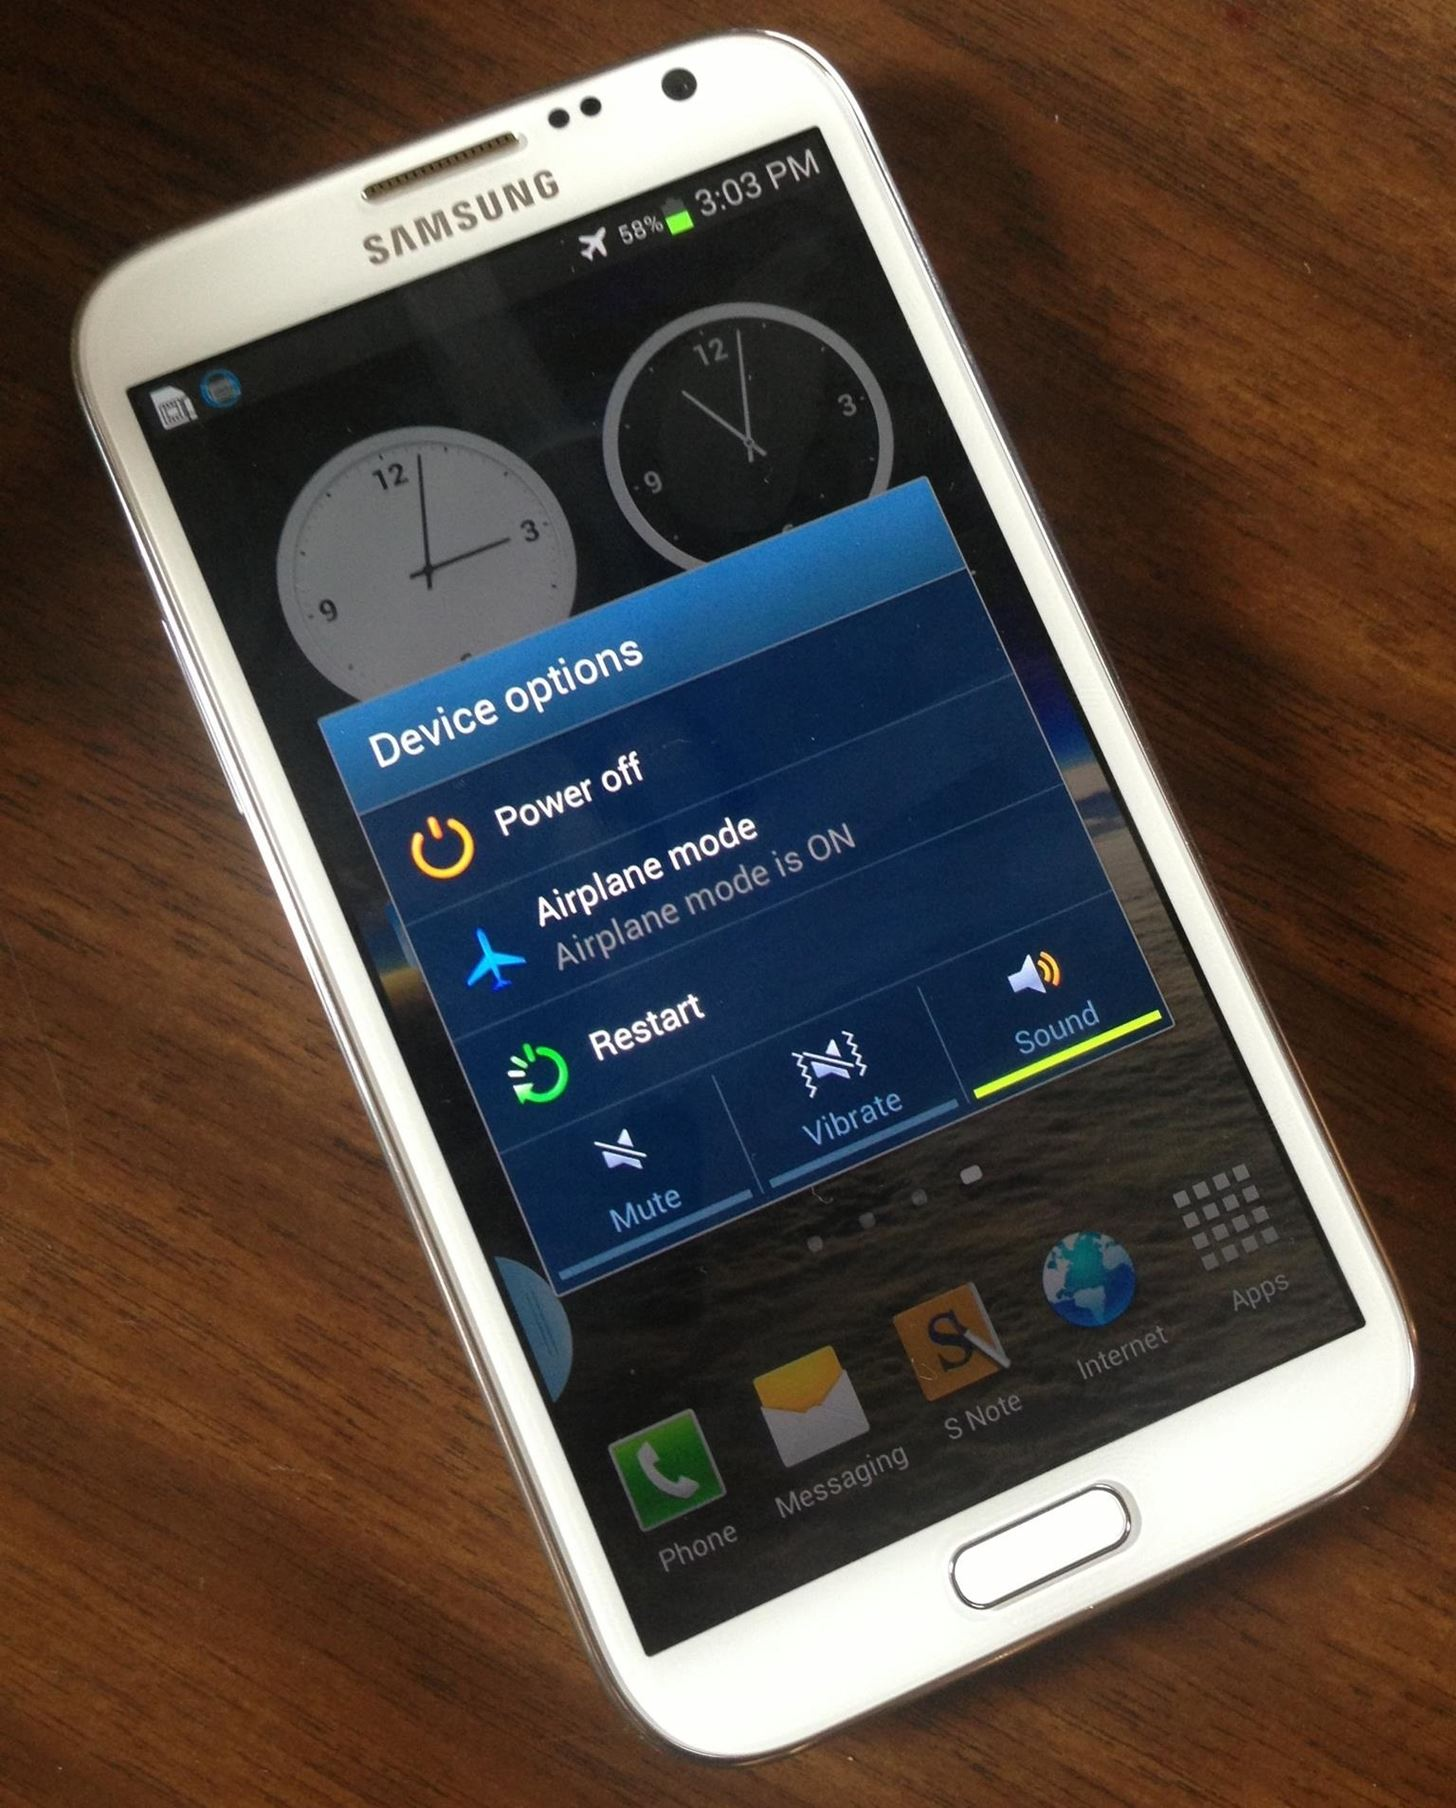 How to Speed Up Charging Times on Your Samsung Galaxy Note 2 or Other Android Device